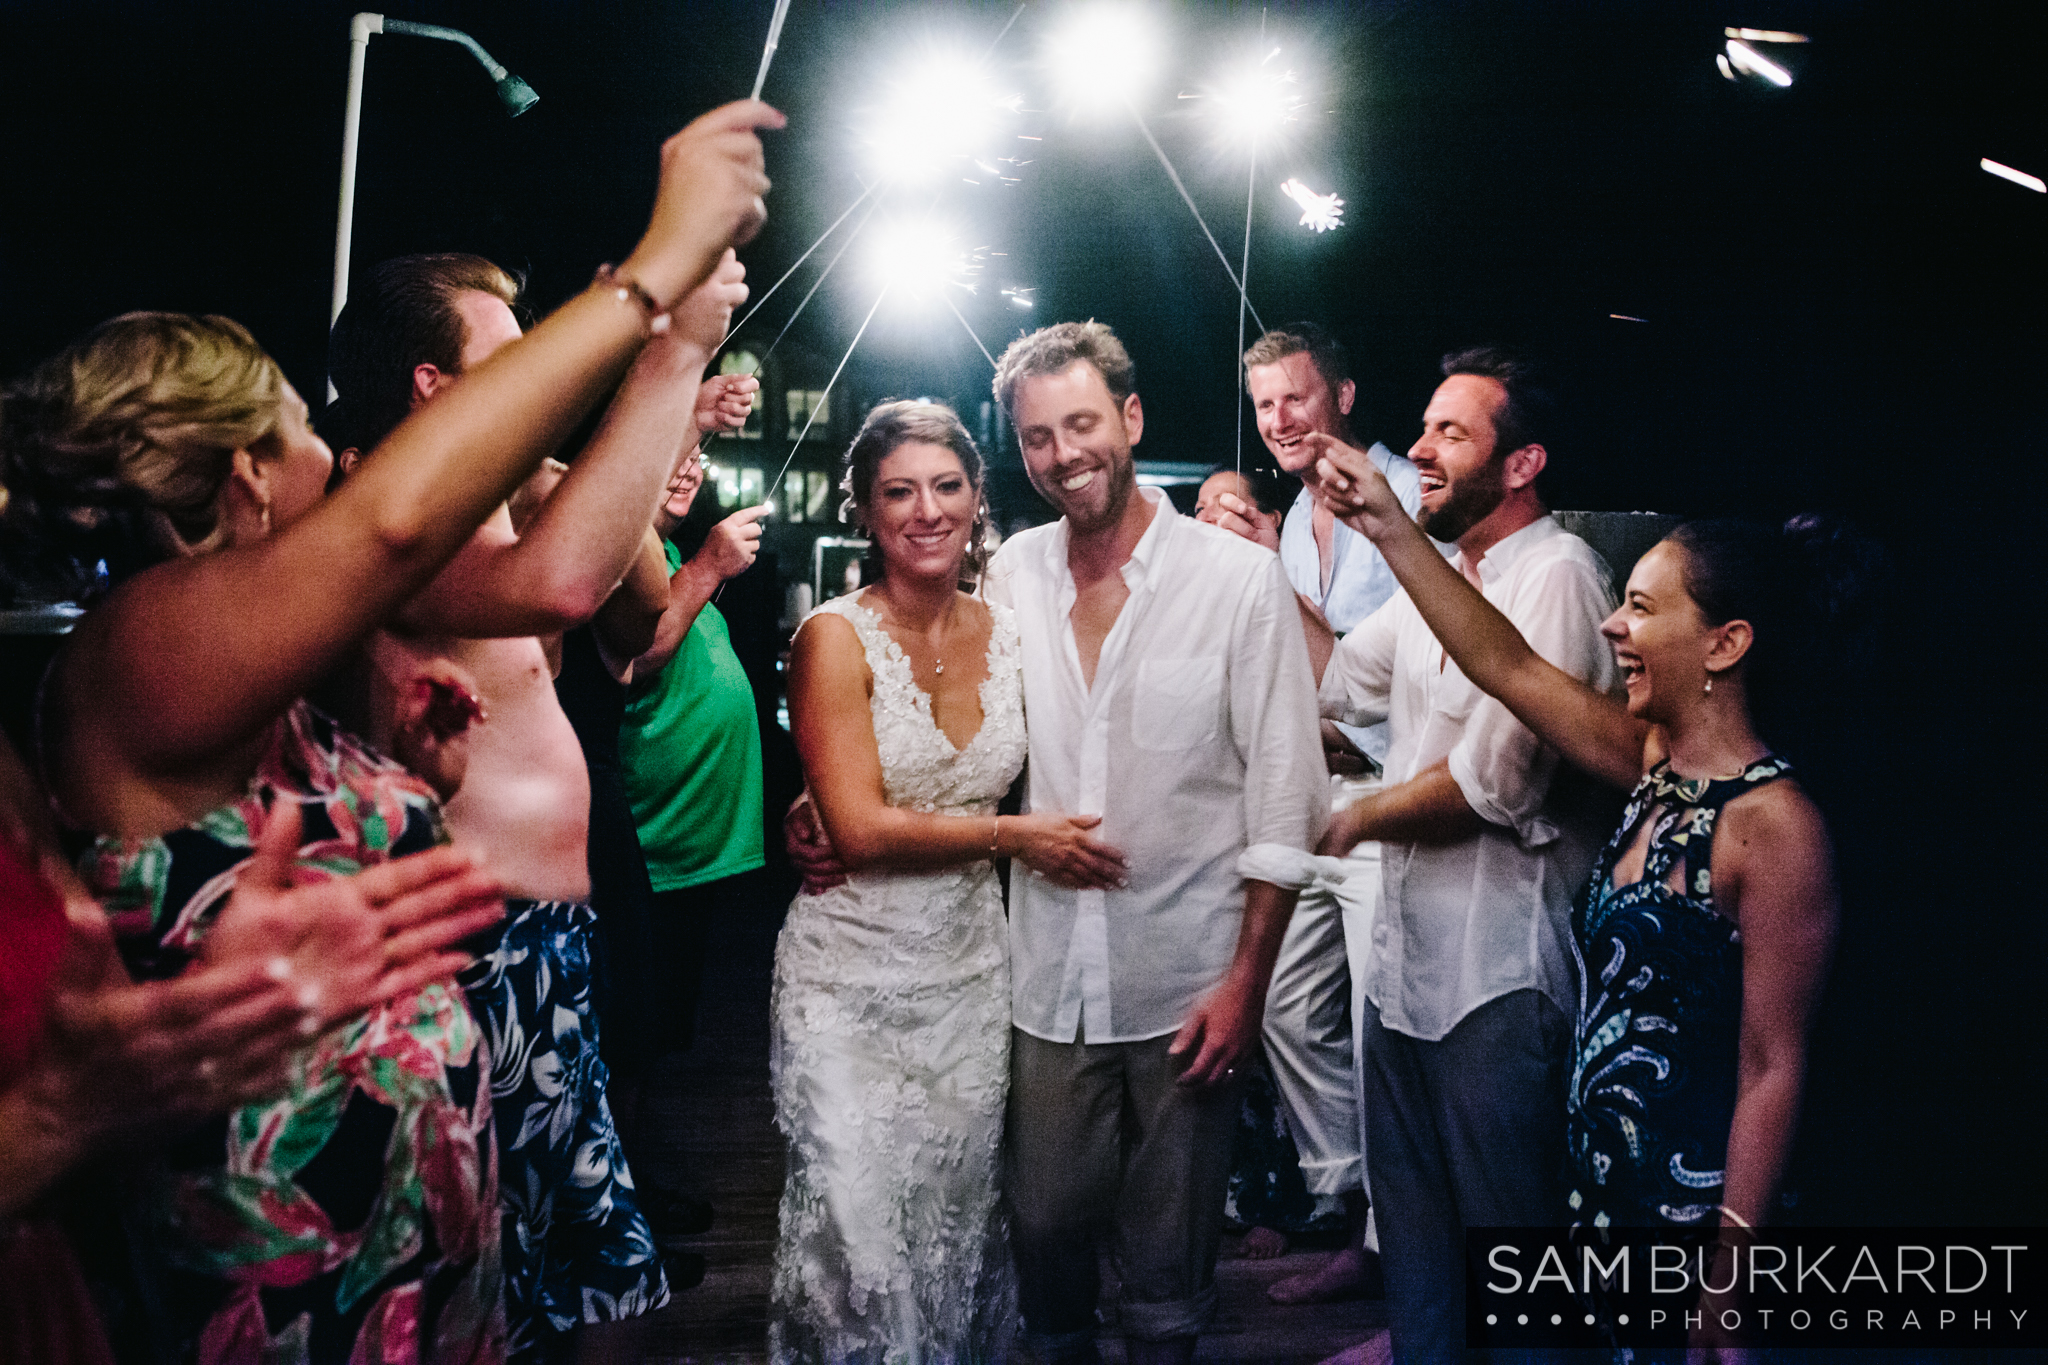 samburkardt_key_west_wedding_marathon_florida_summer_beach_ocean_front_0071.jpg